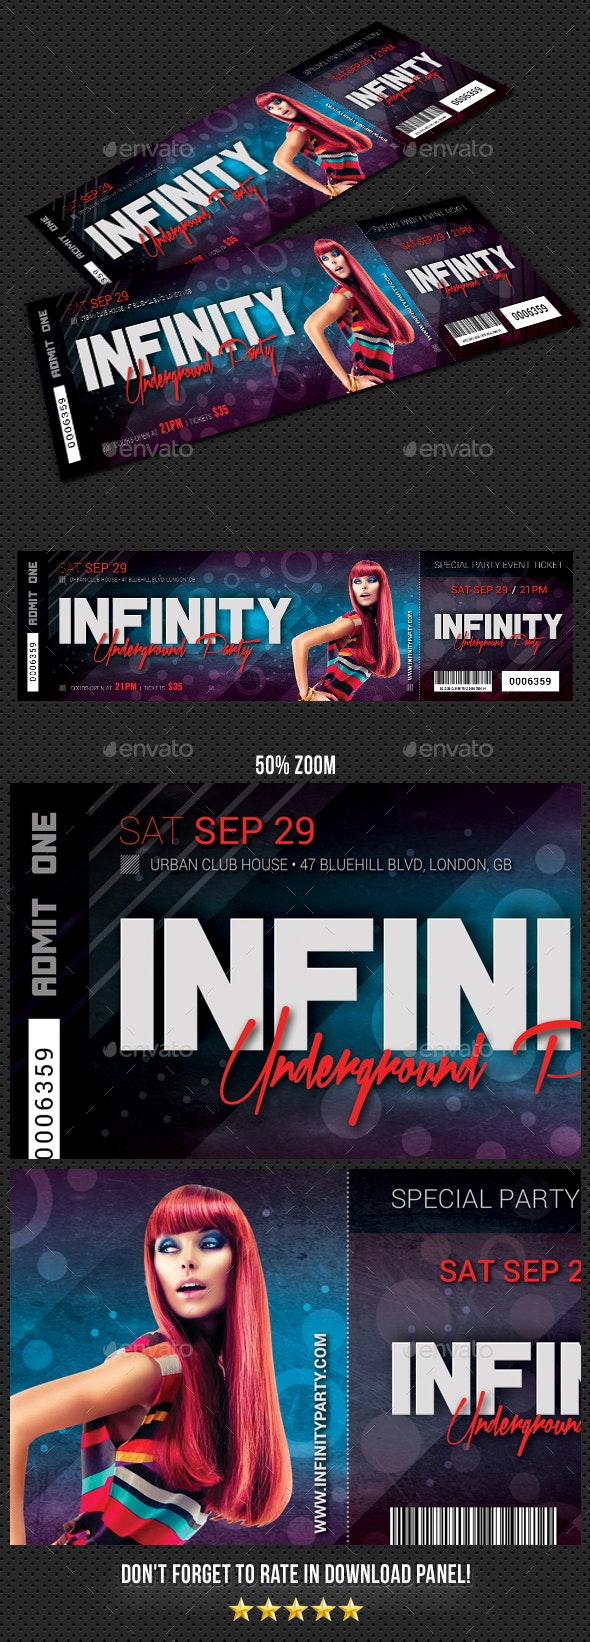 Infinity Underground Party Event Ticket - Cards & Invites Print Templates